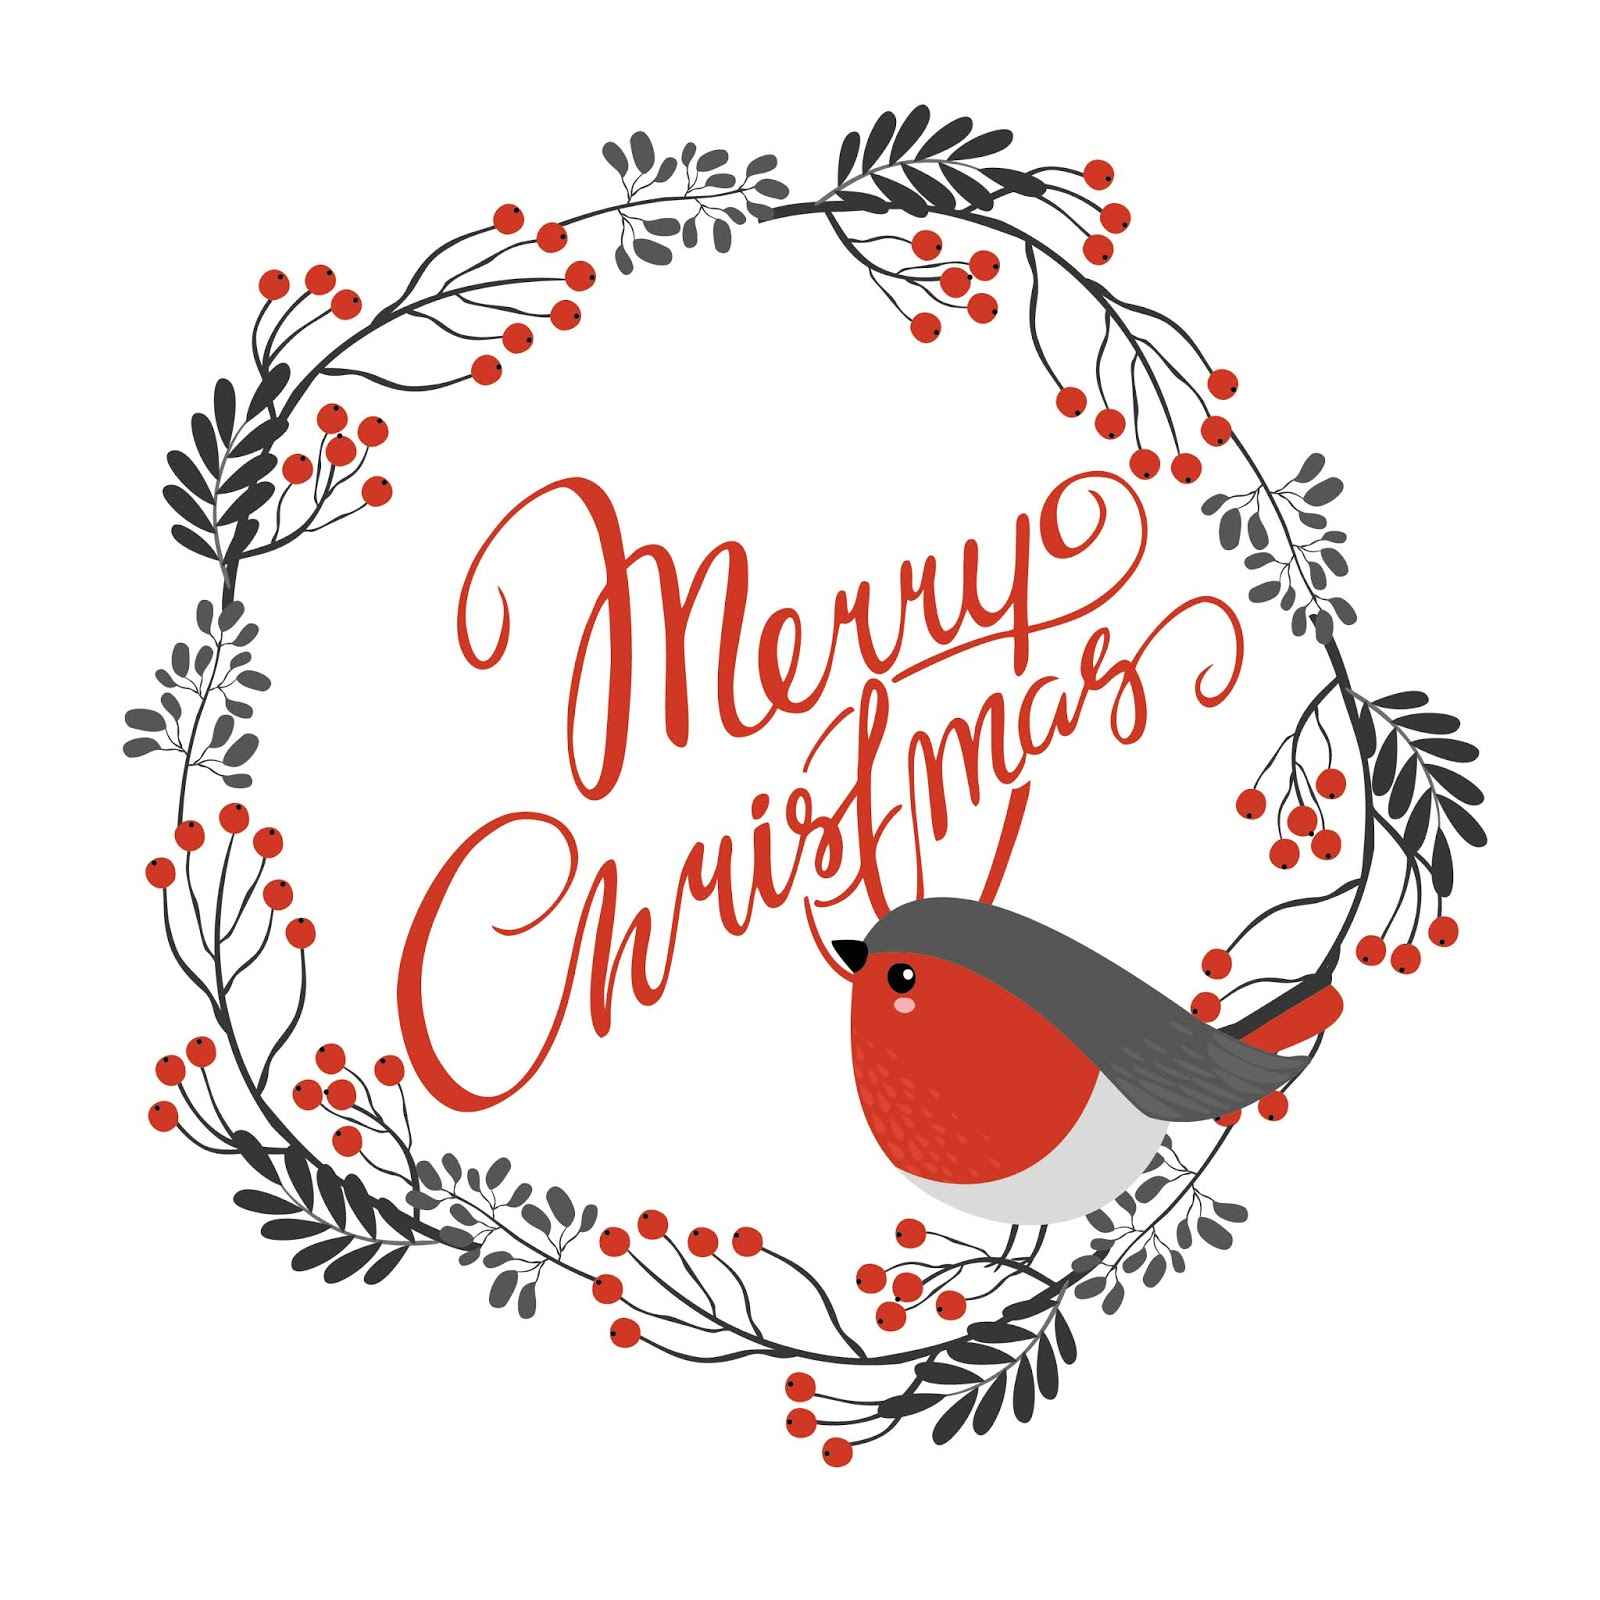 Merry Christmas Labels Set Free Download Vector CDR, AI, EPS and PNG Formats